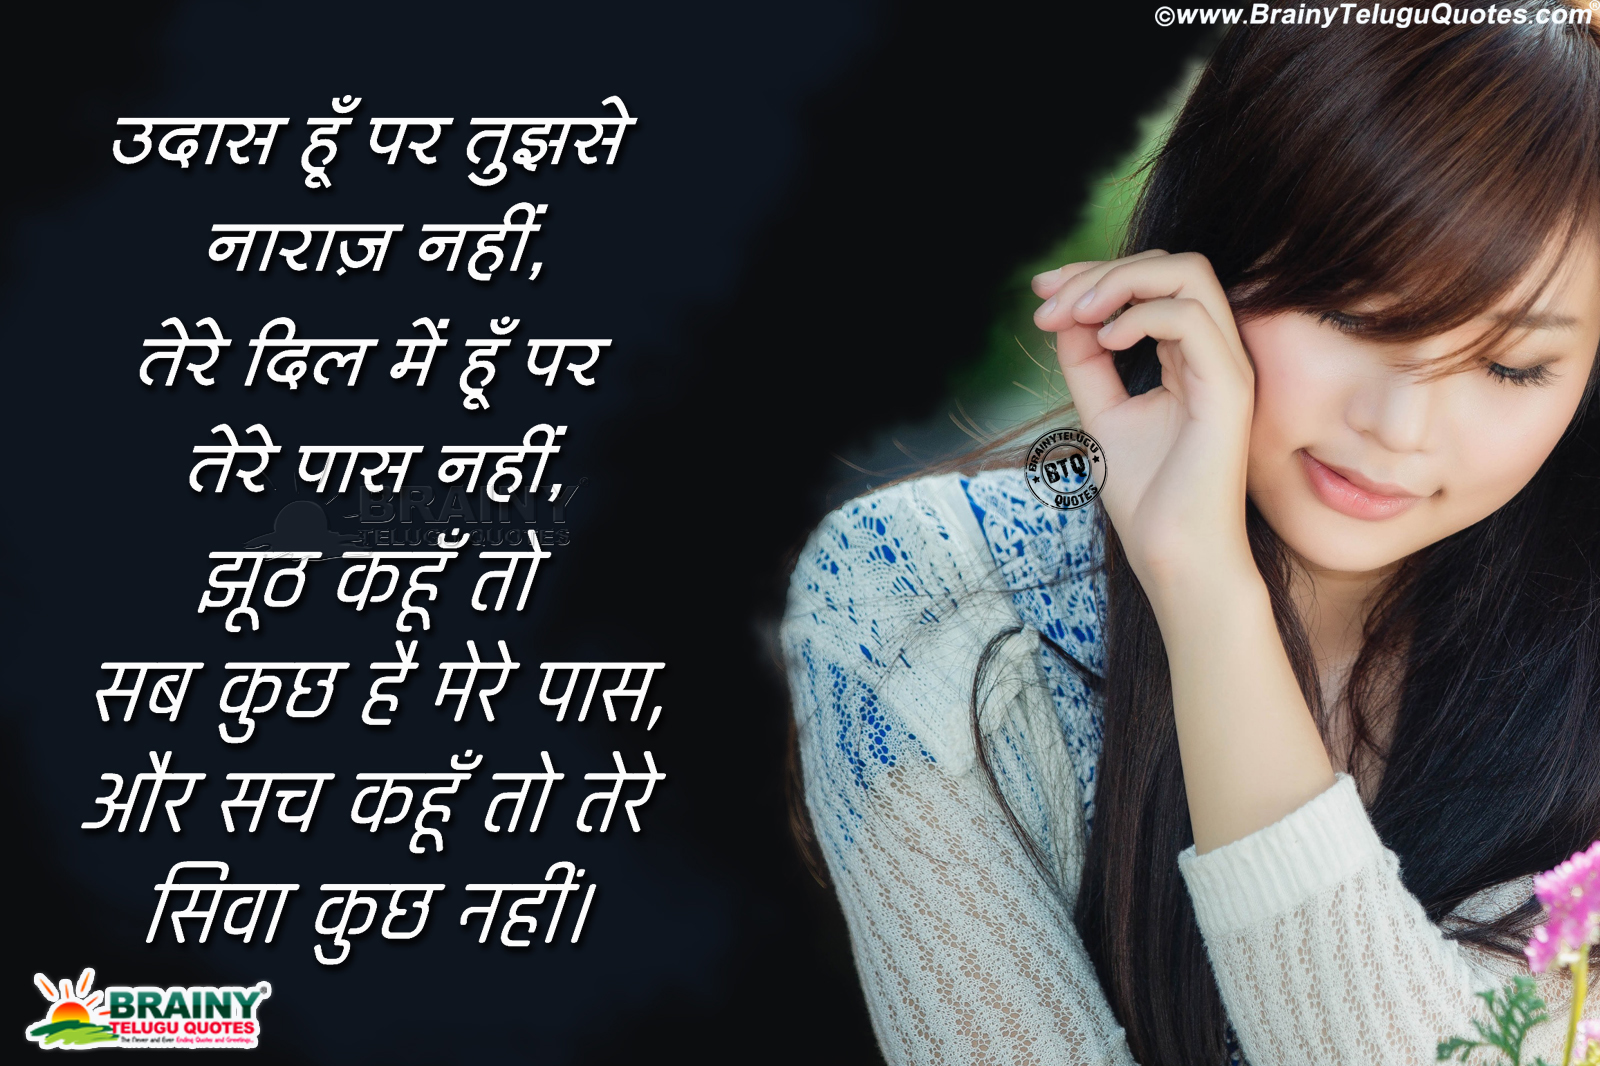 Hindi Alone Sad Love Quotations And Messages Online With Girl Hd Wallpapers Brainyteluguquotes Comtelugu Quotes English Quotes Hindi Quotes Tamil Quotes Greetings